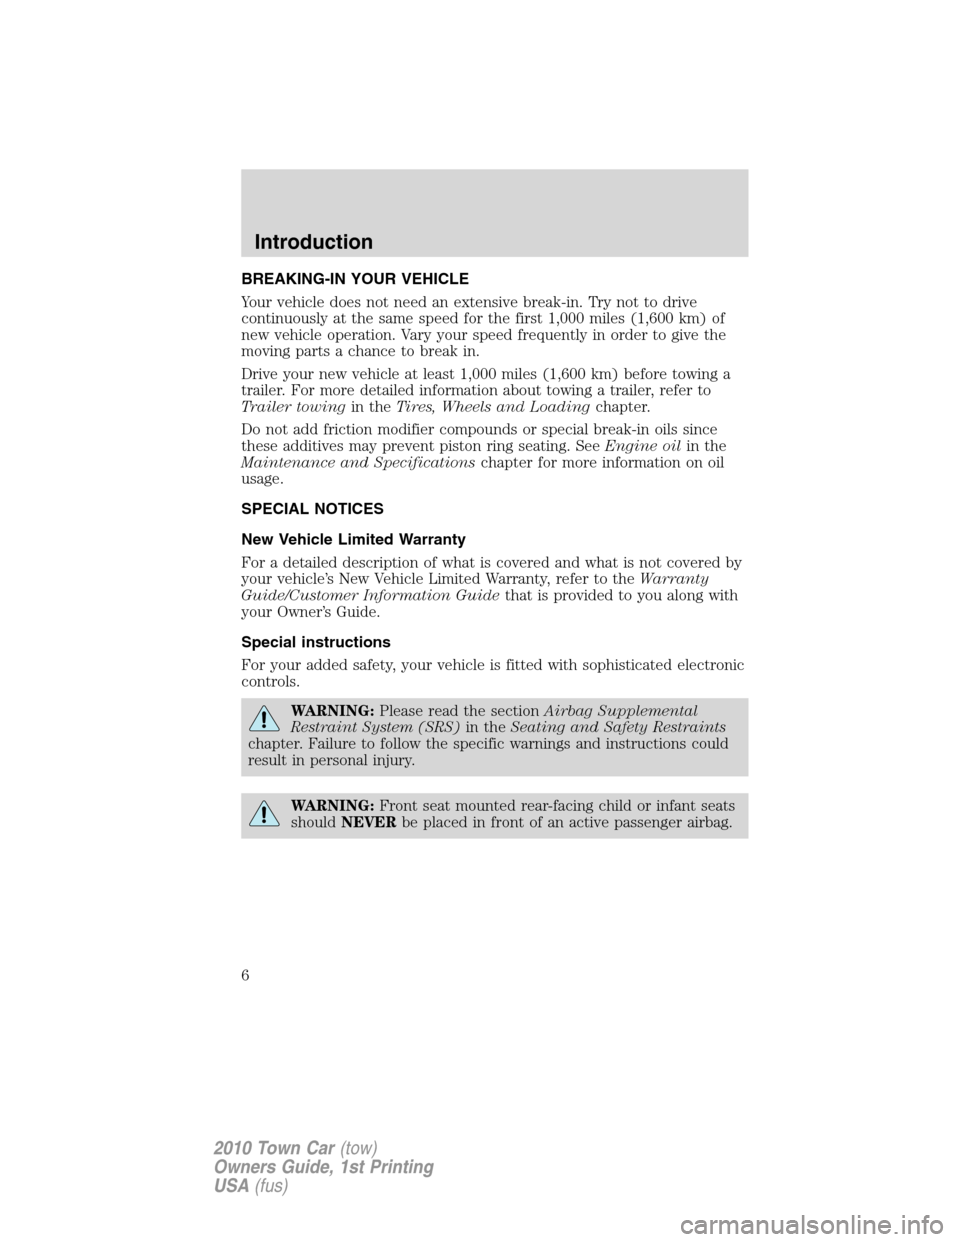 LINCOLN TOWN CAR 2010  Owners Manual, Page 6